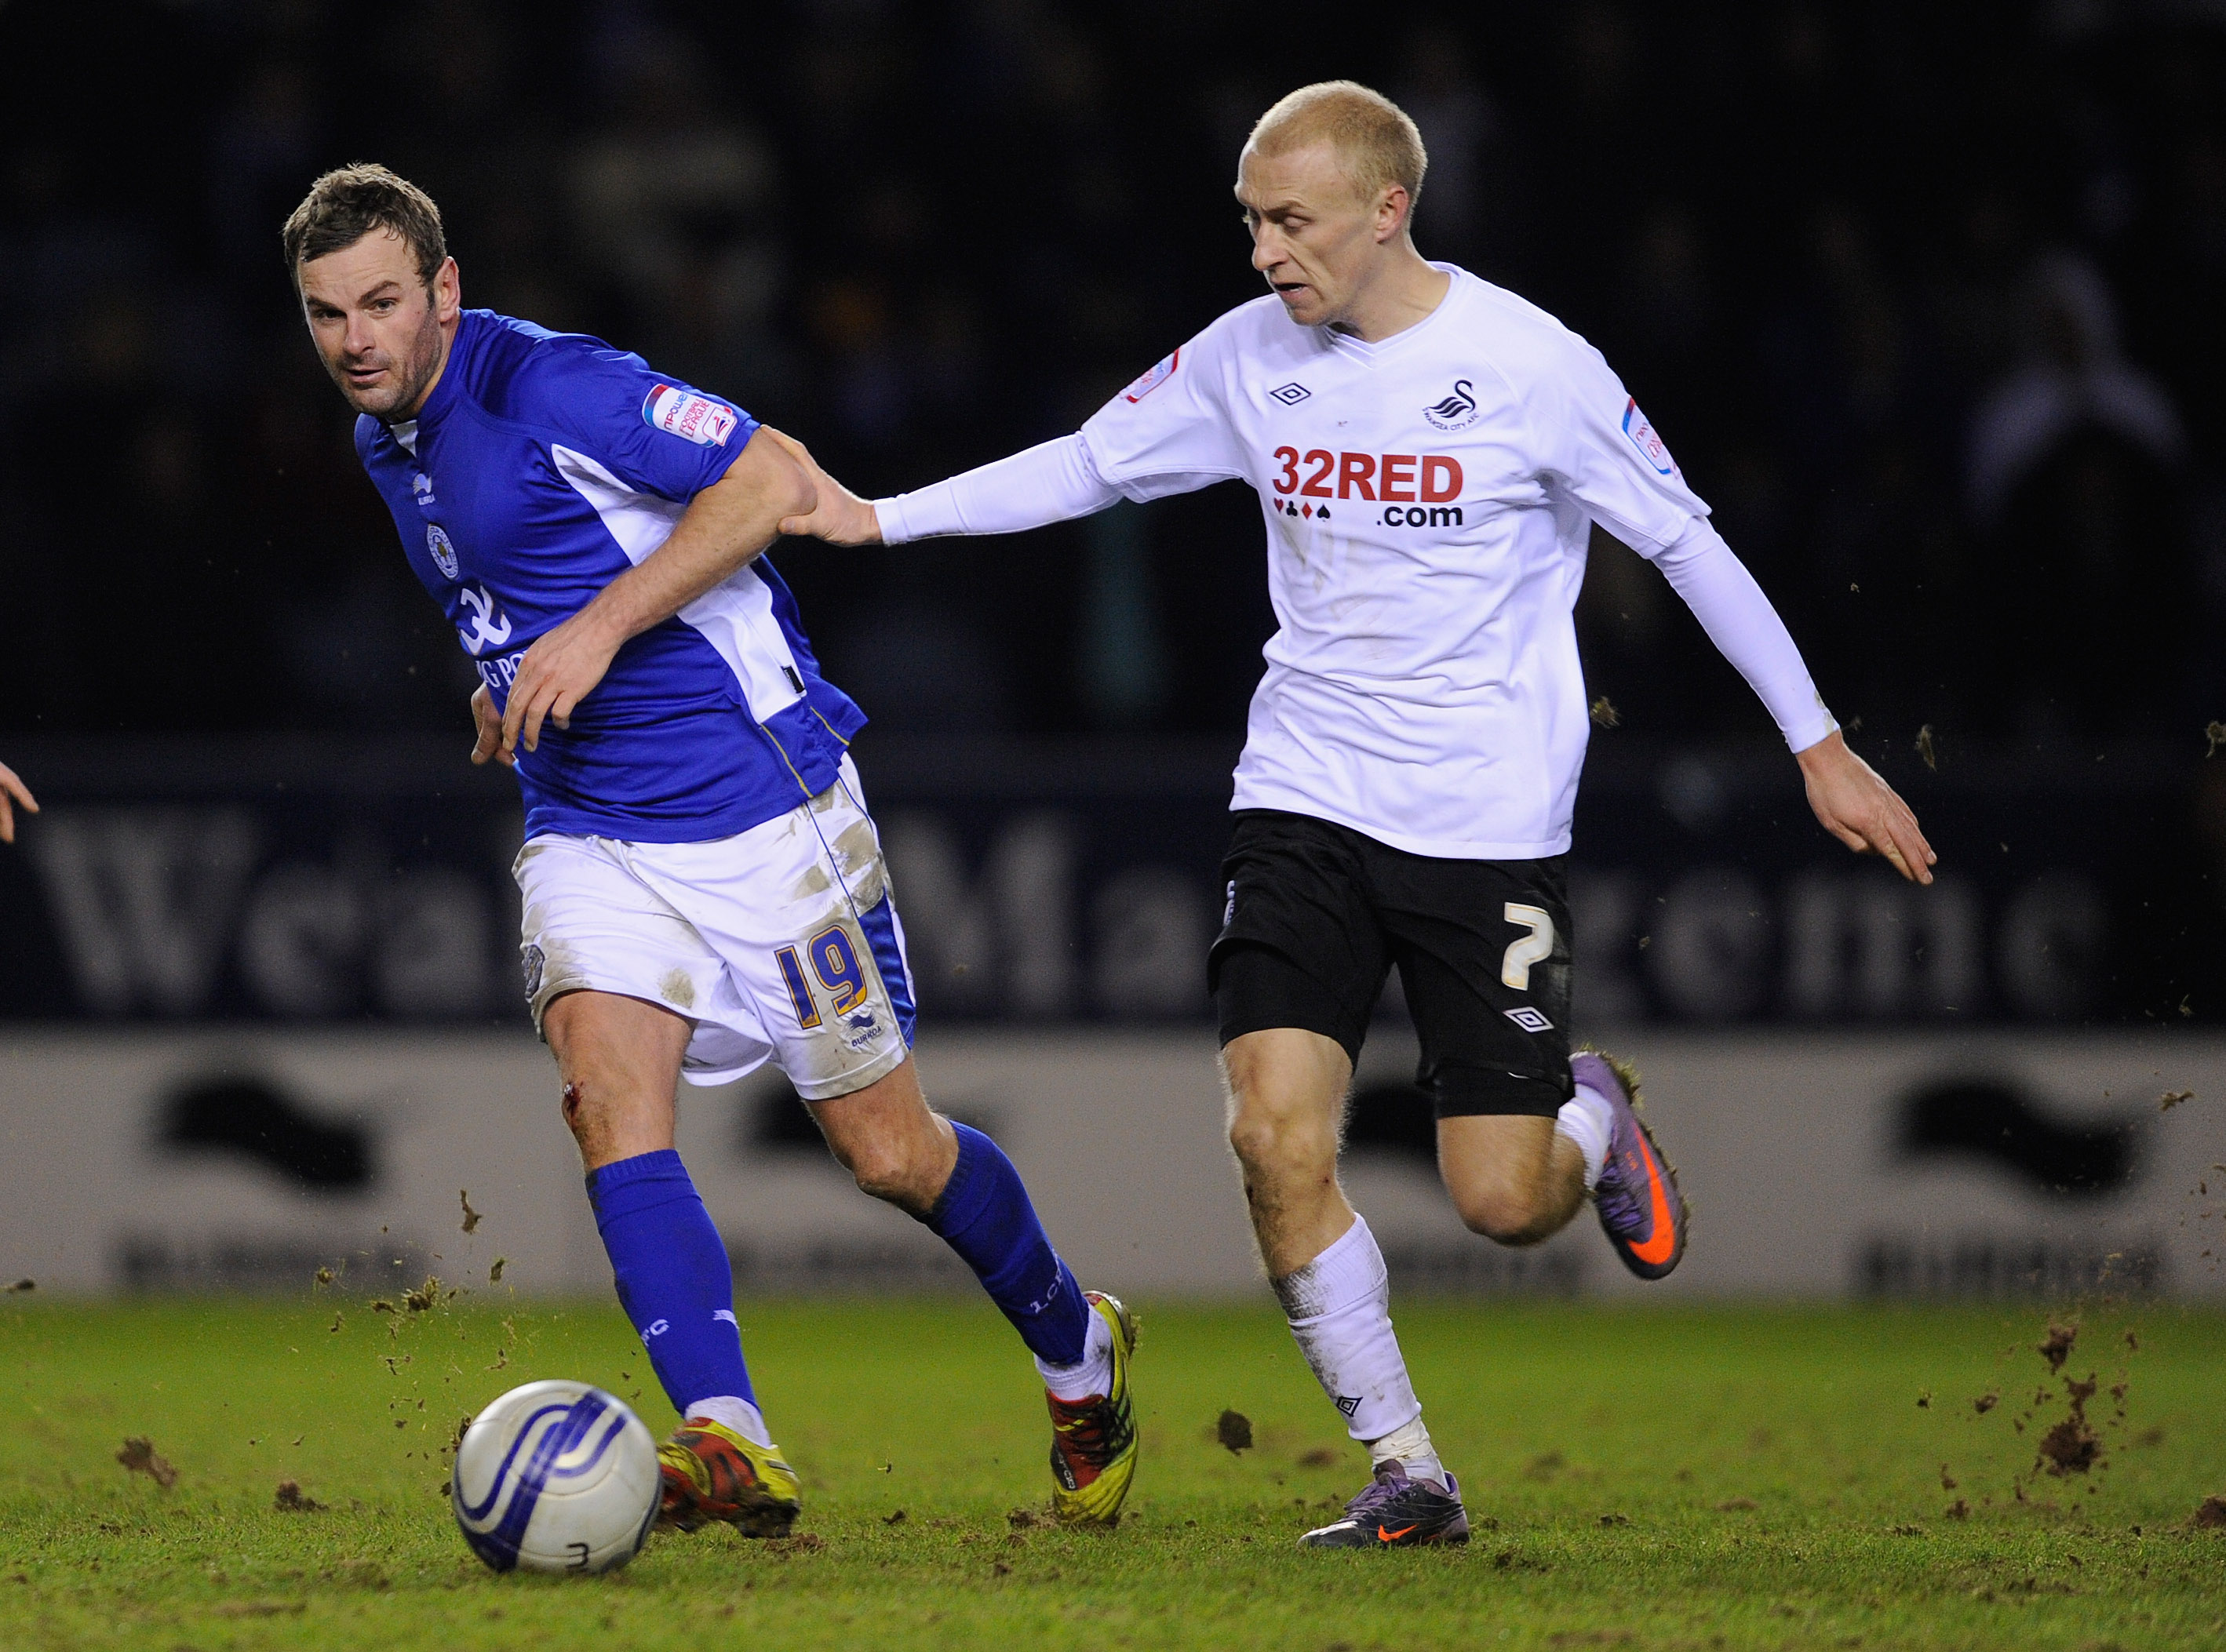 David Cotterill (Right) joined on loan late in the season